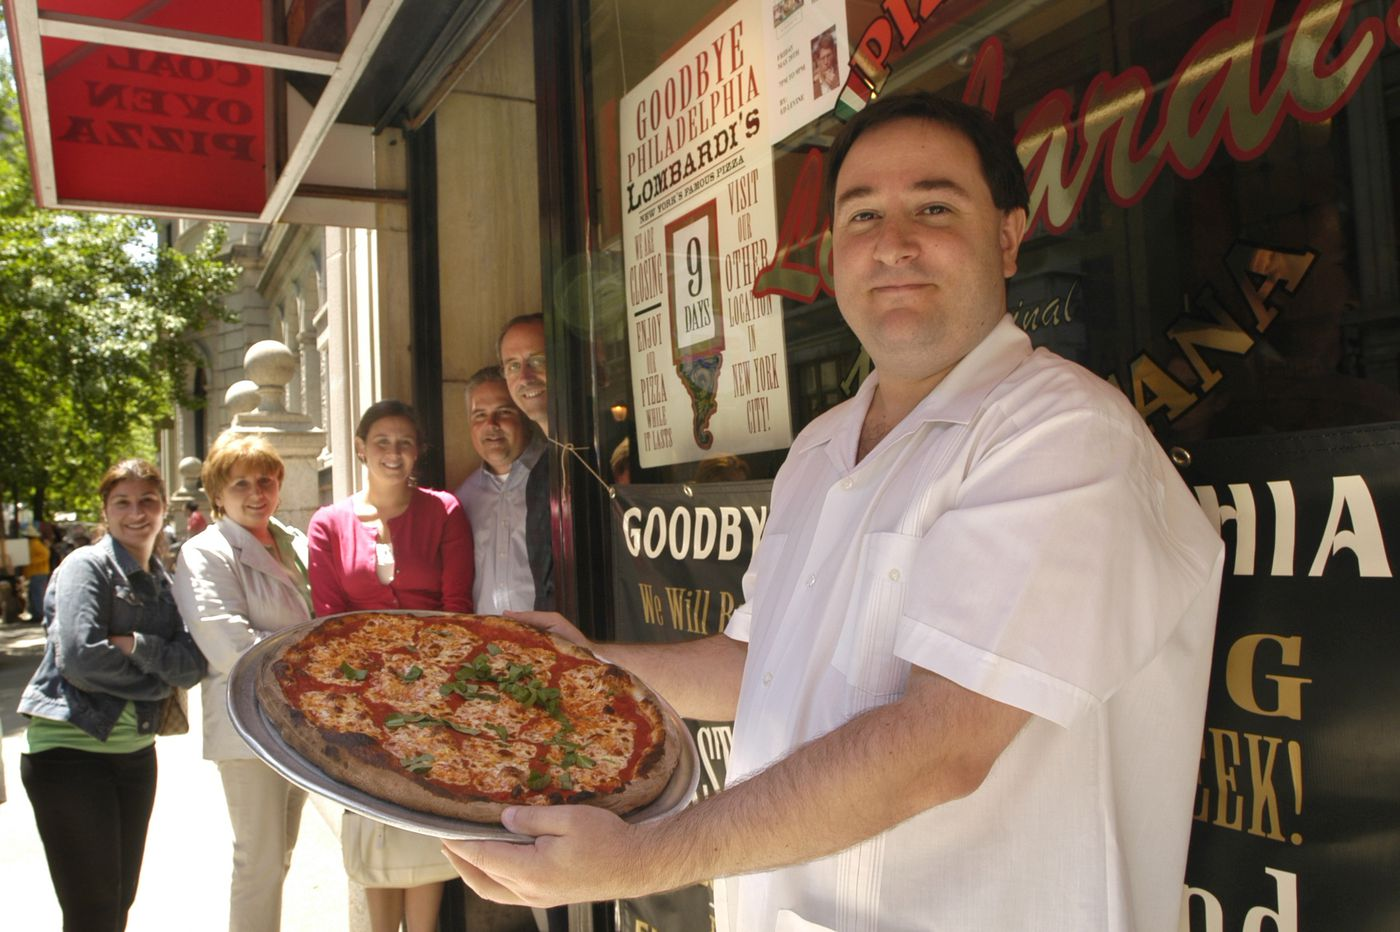 Pa. gaming board rejects Lombardi's Pizza for alleged mob ties